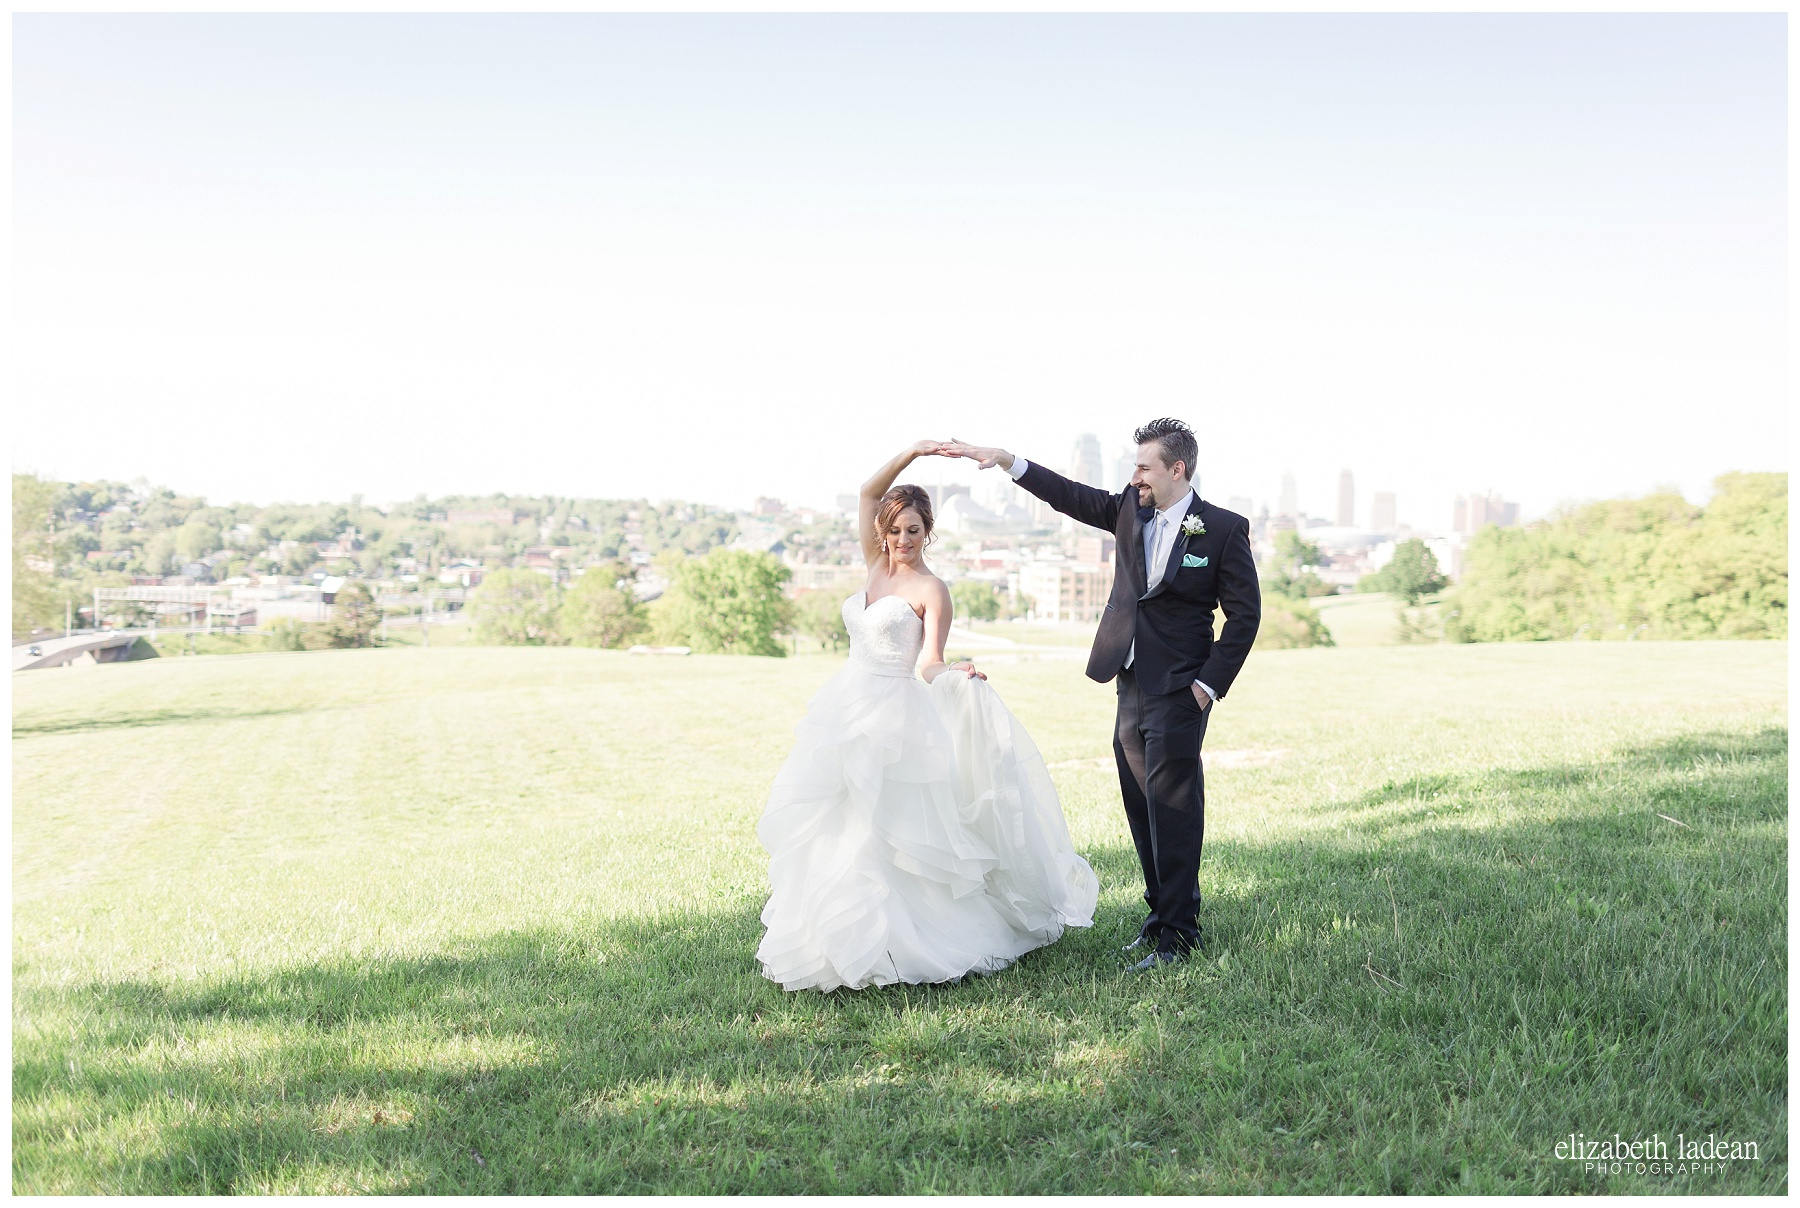 Terrace-on-Grand-Kansas-City-Wedding-Photography-C+J-0506-Elizabeth-Ladean-Photography-photo_0635.jpg